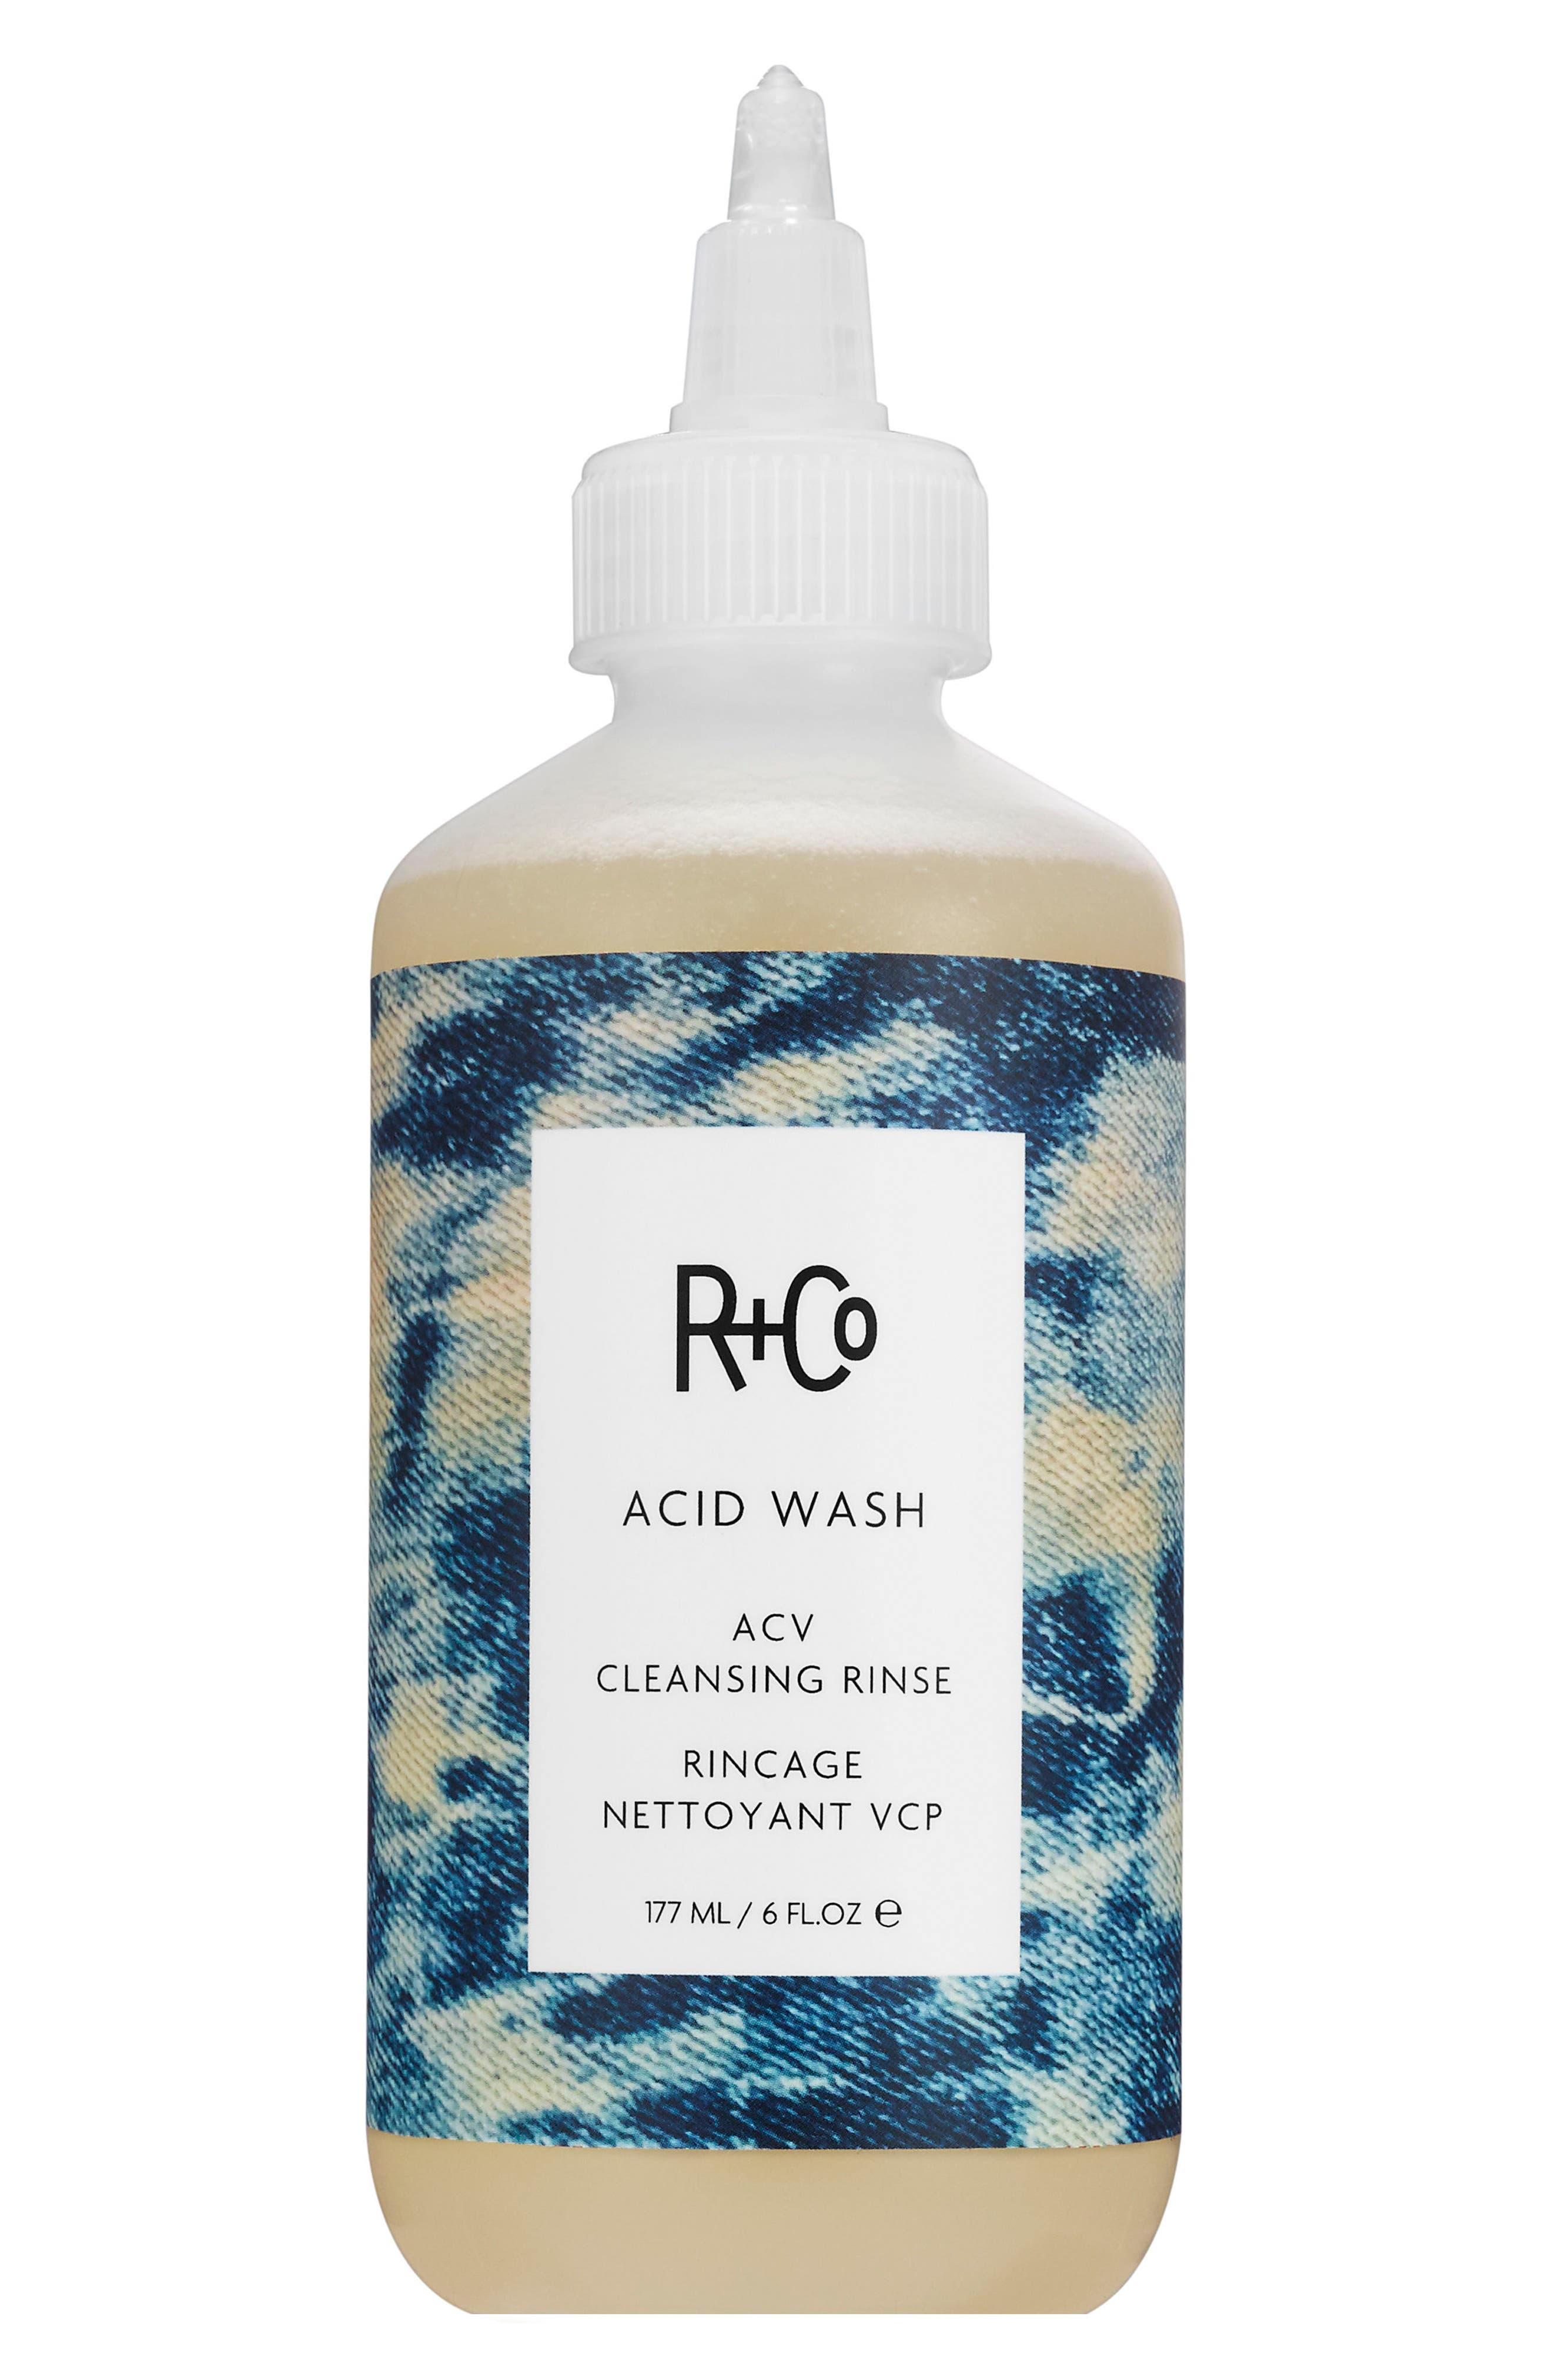 Alternate Image 1 Selected - SPACE.NK.apothecary R+Co Acid Wash ACV Cleansing Rinse